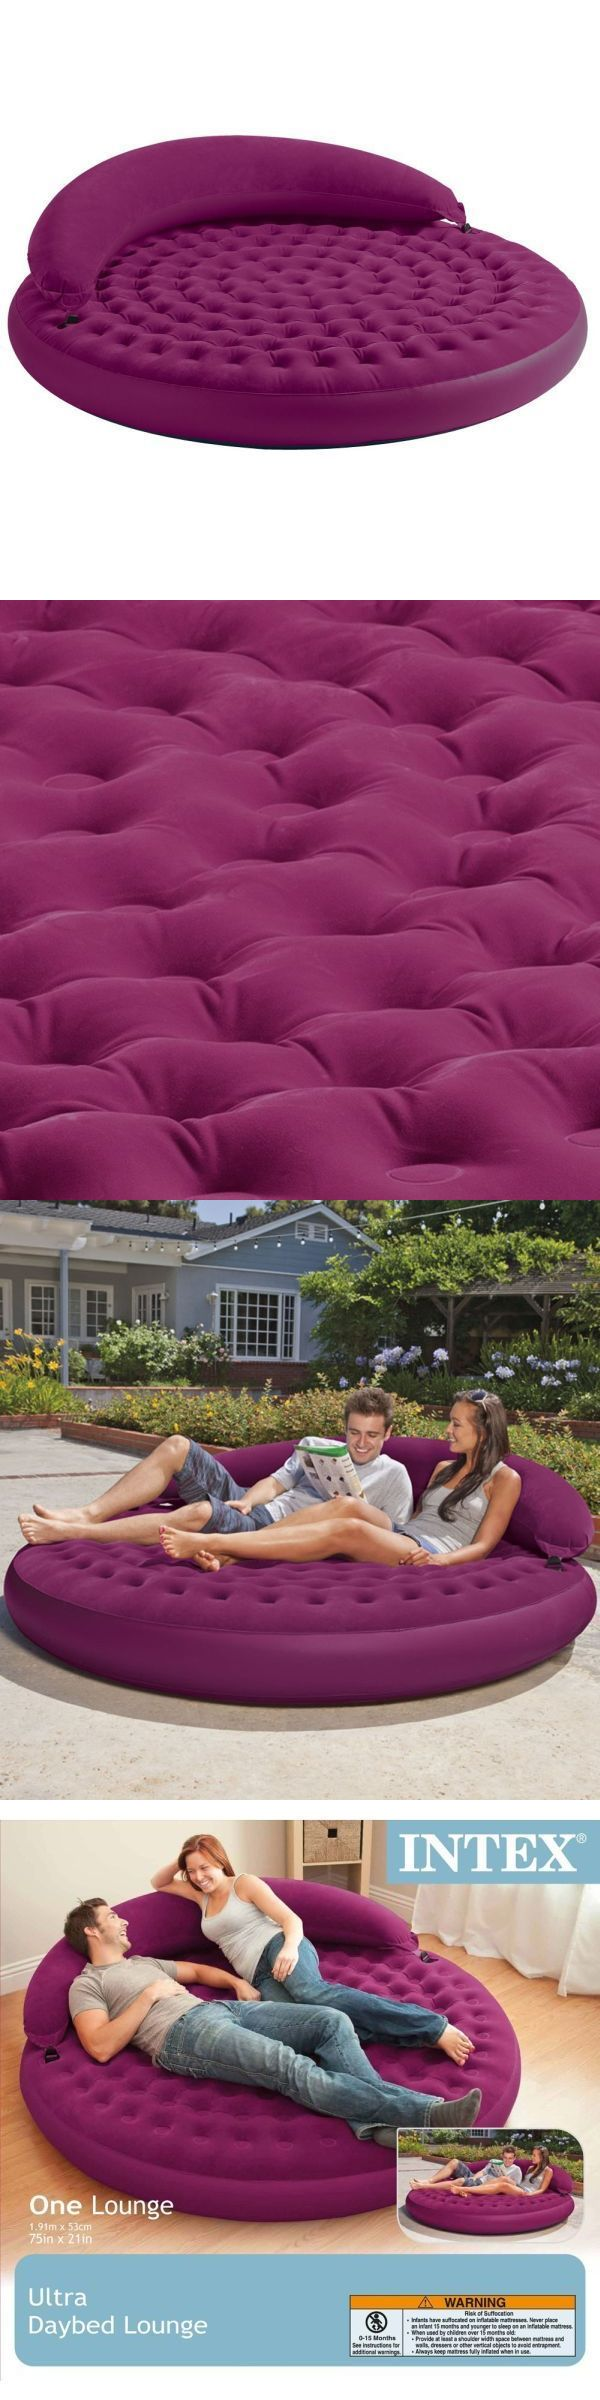 Inflatable Mattresses Airbeds 131598: Air Bed King Inflatable Mattress Queen Pool For Kids Chair Lounge Best Outdoor -> BUY IT NOW ONLY: $59.99 on eBay!